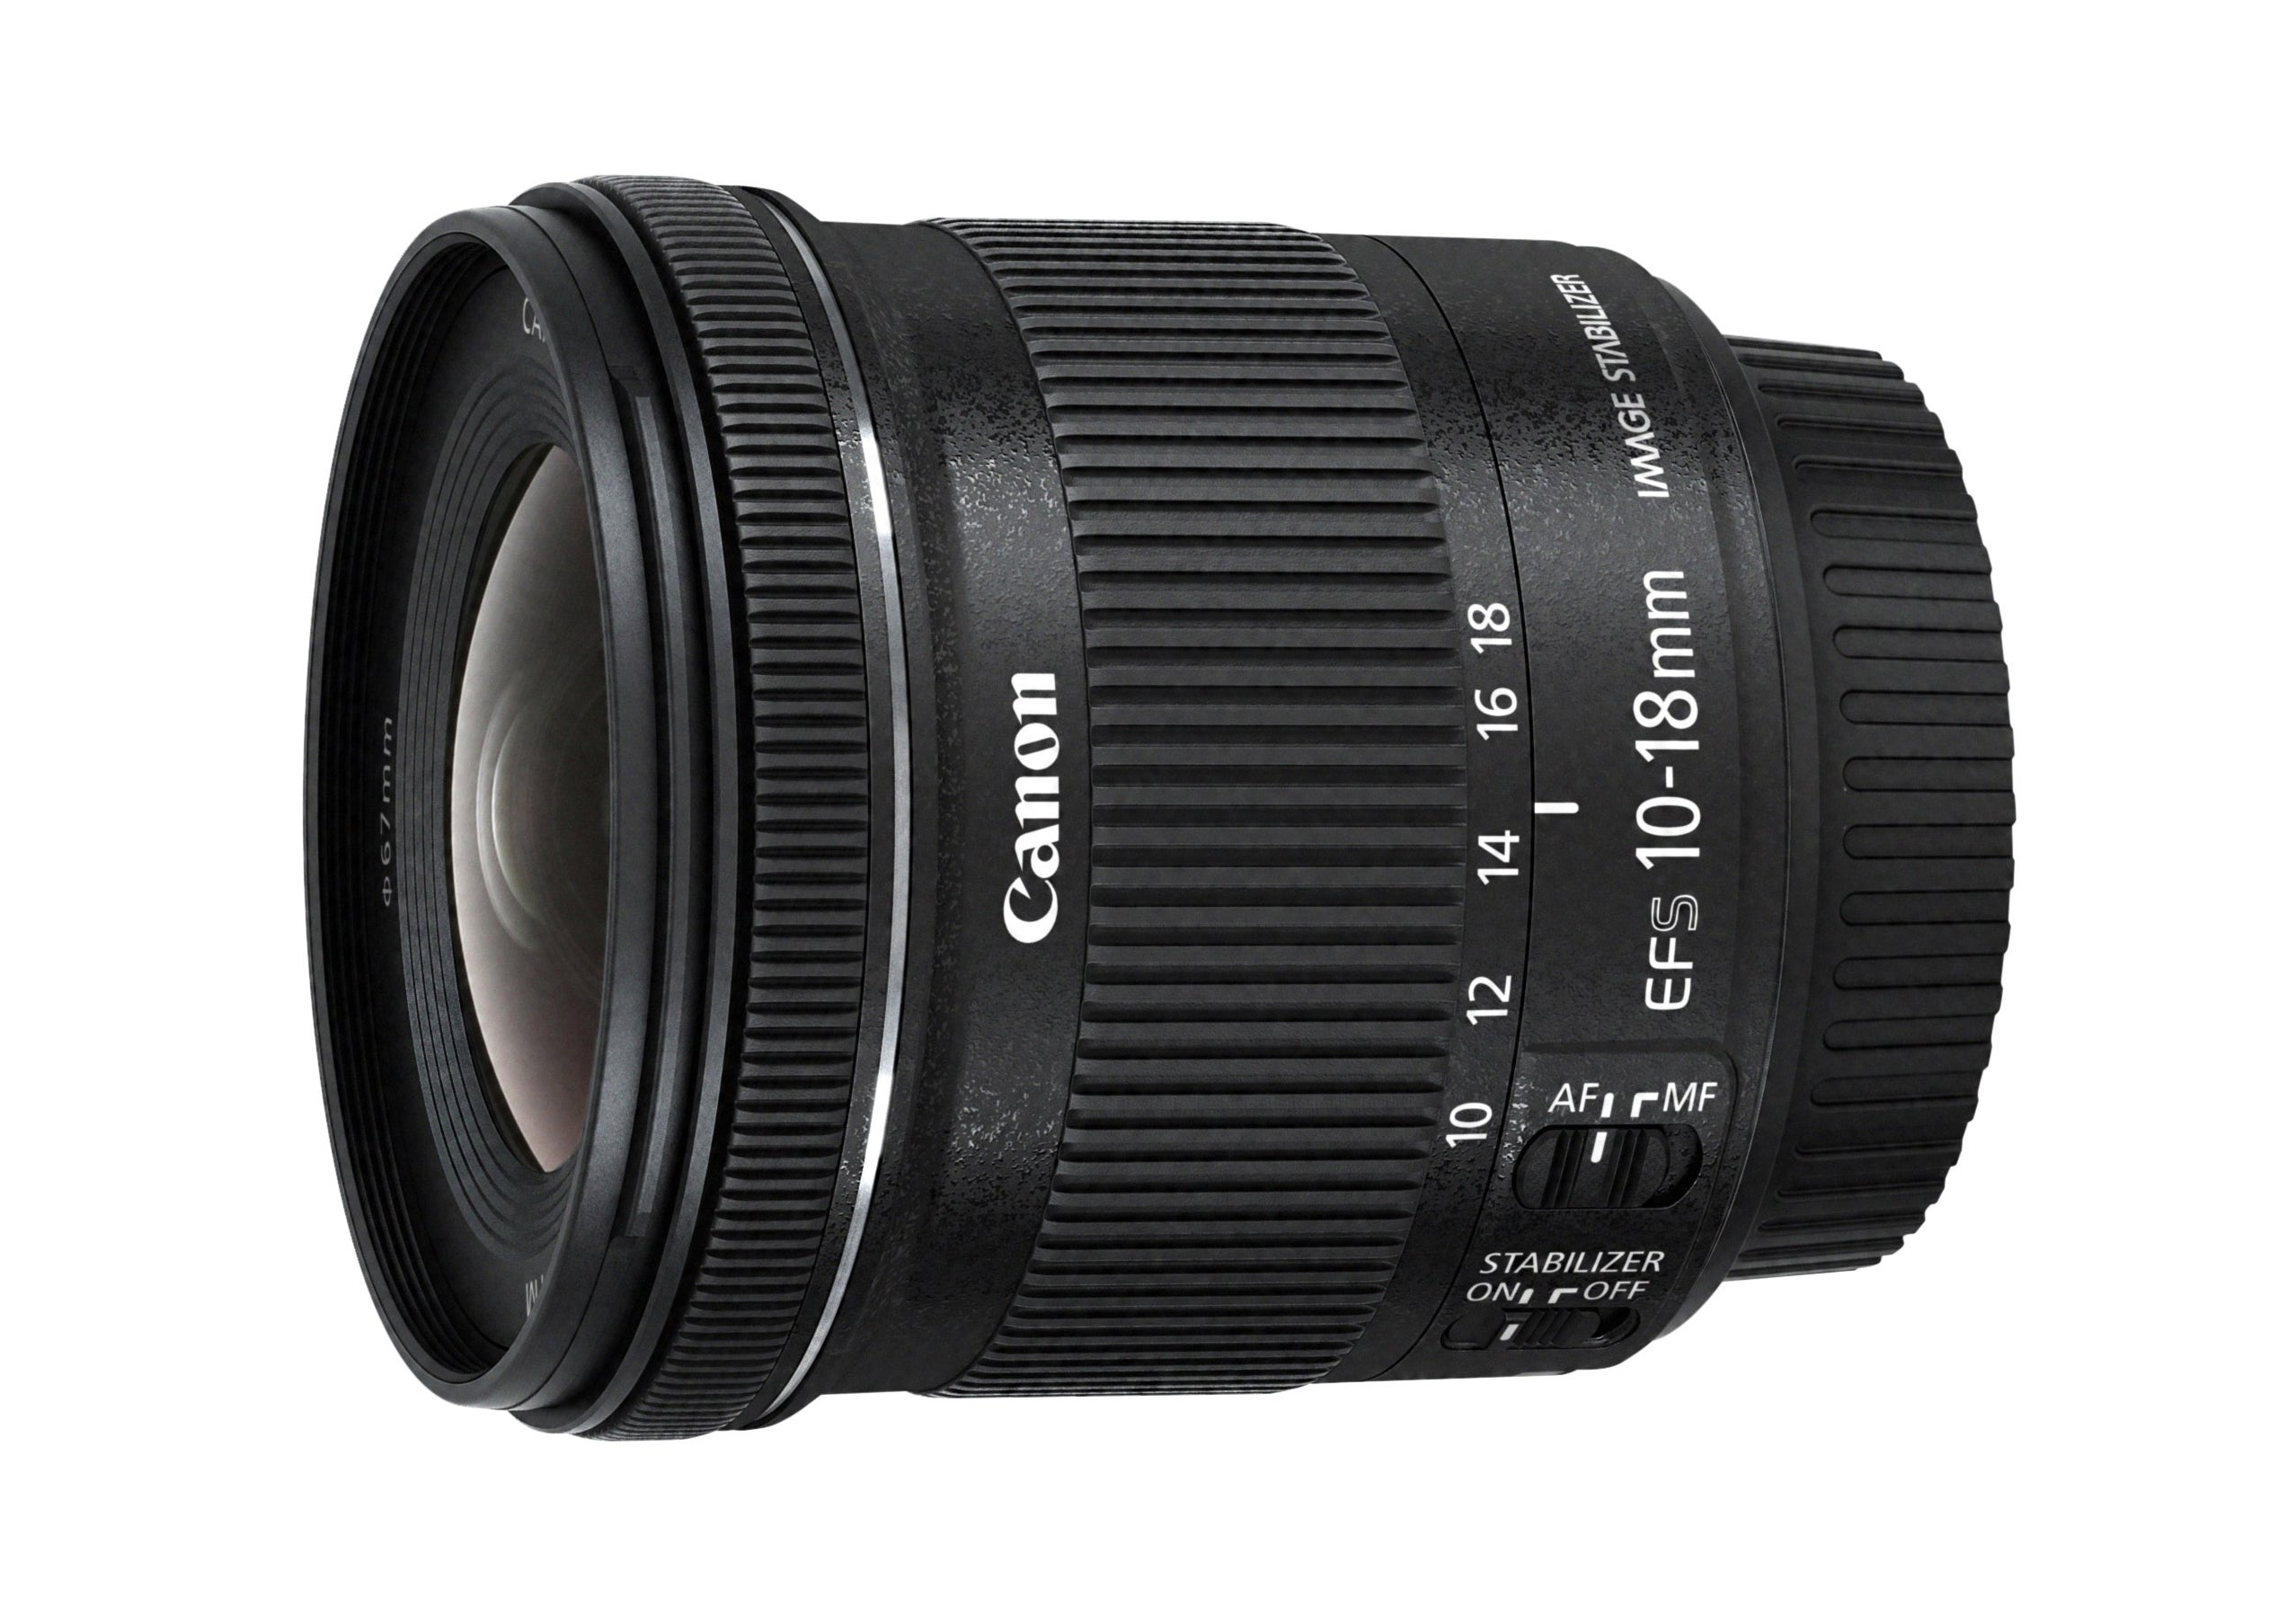 Best canon lenses: Canon EF-S 10-18mm f/4.5-5.6 IS STM